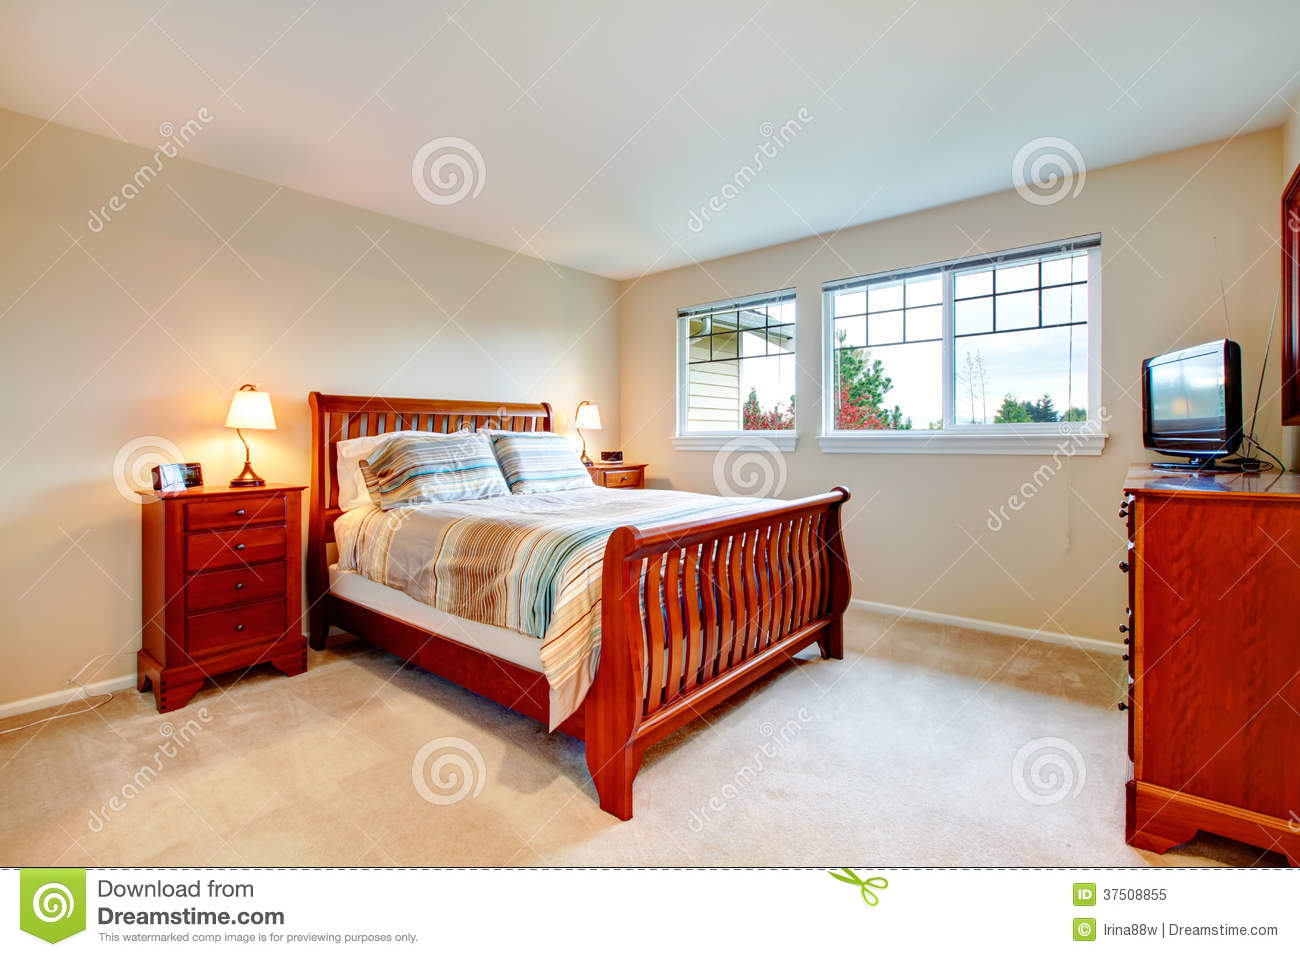 warm colors bedroom with wood furniture royalty free stock